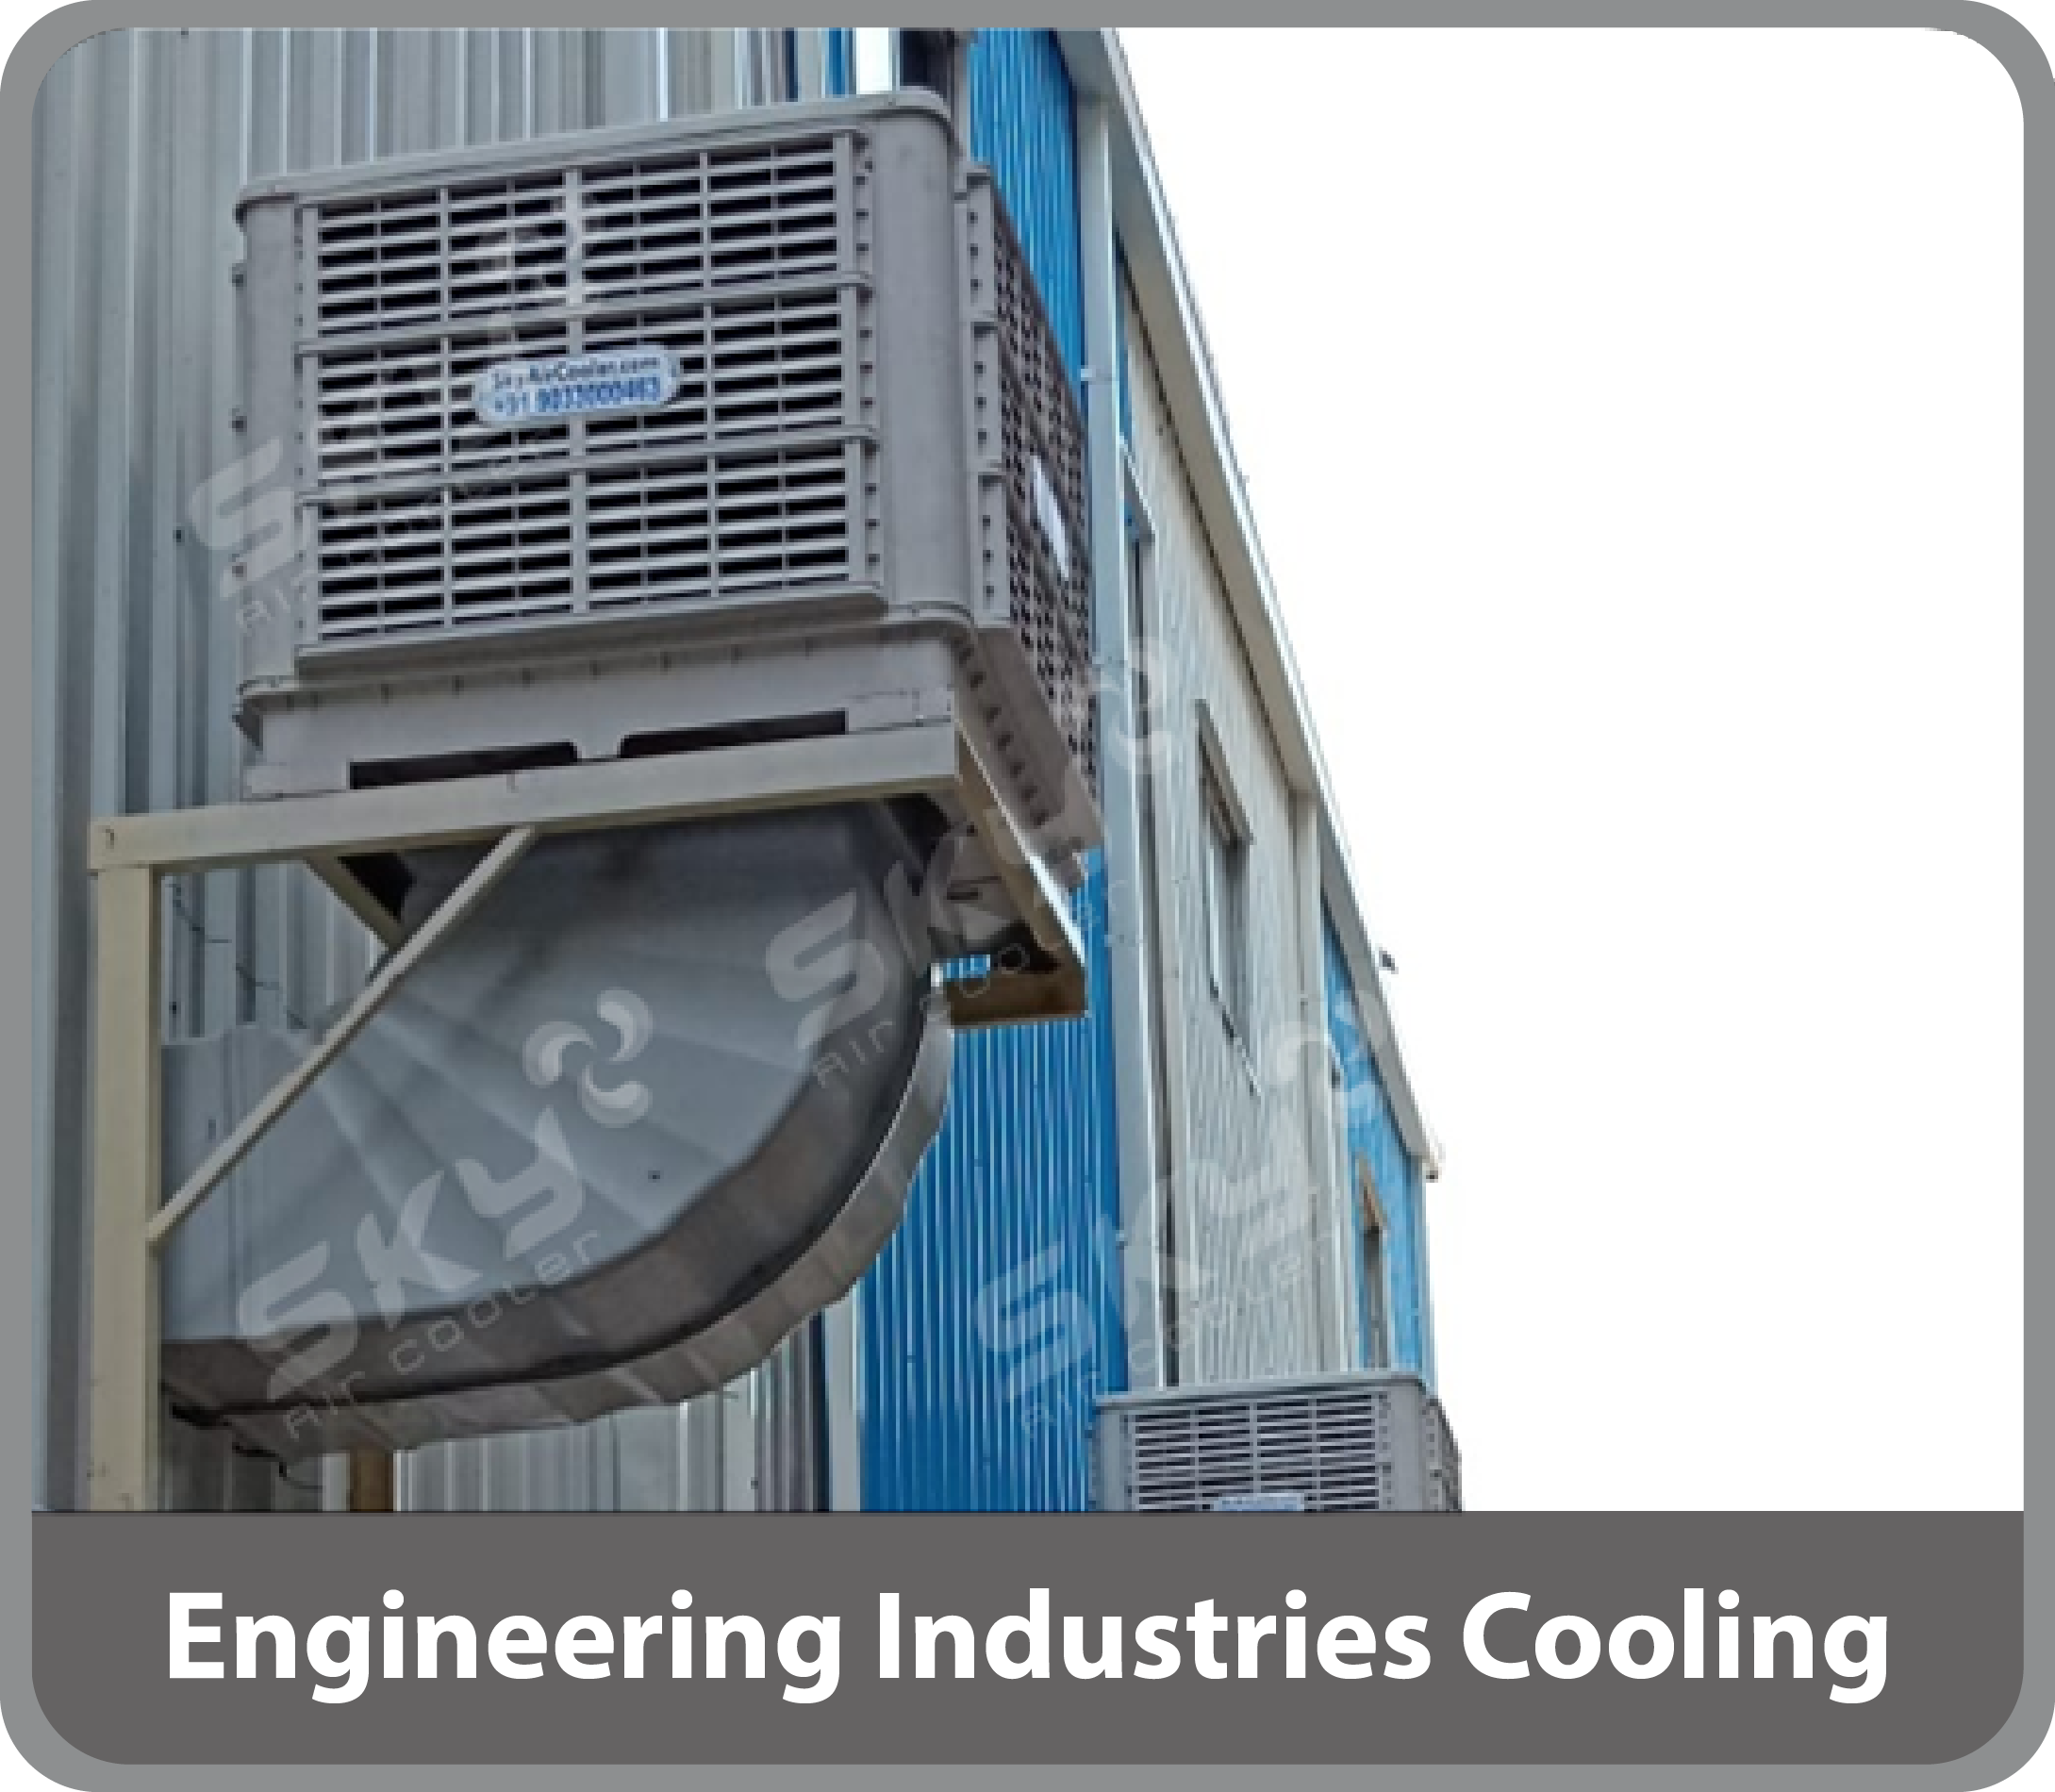 Engineering Industries Cooling